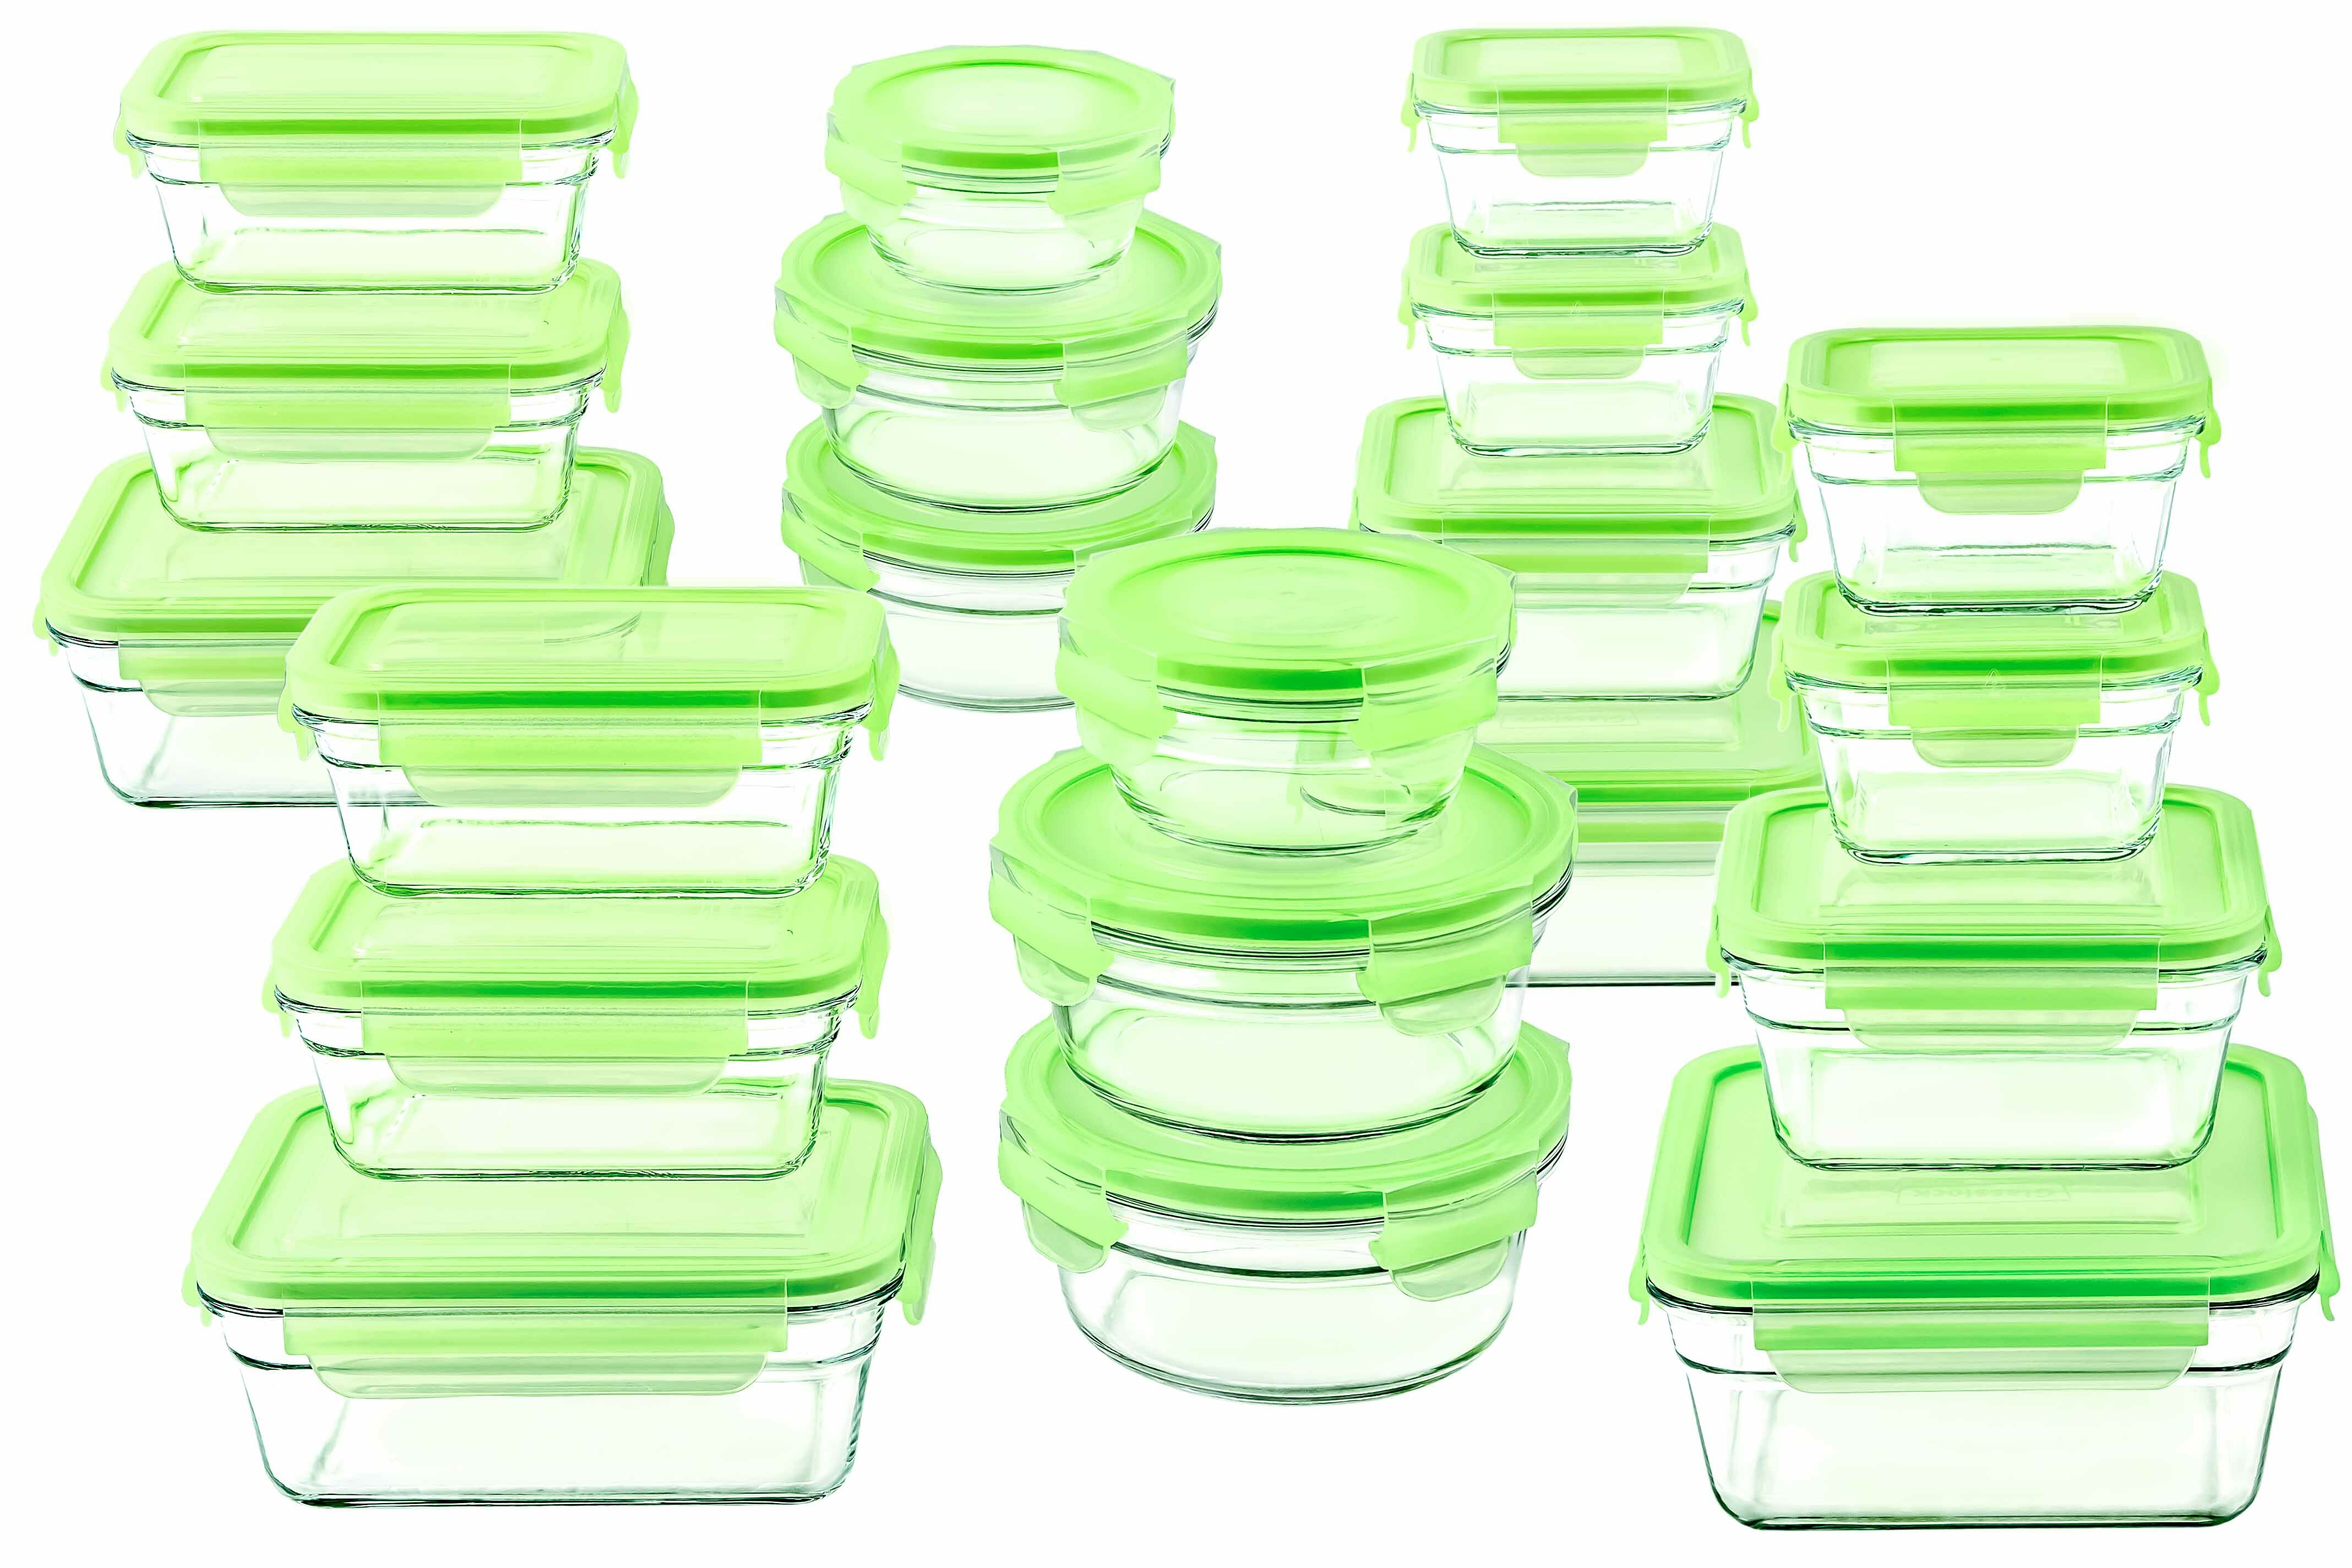 Glasslock Glasslock 20 Container Food Storage Set U0026 Reviews | Wayfair